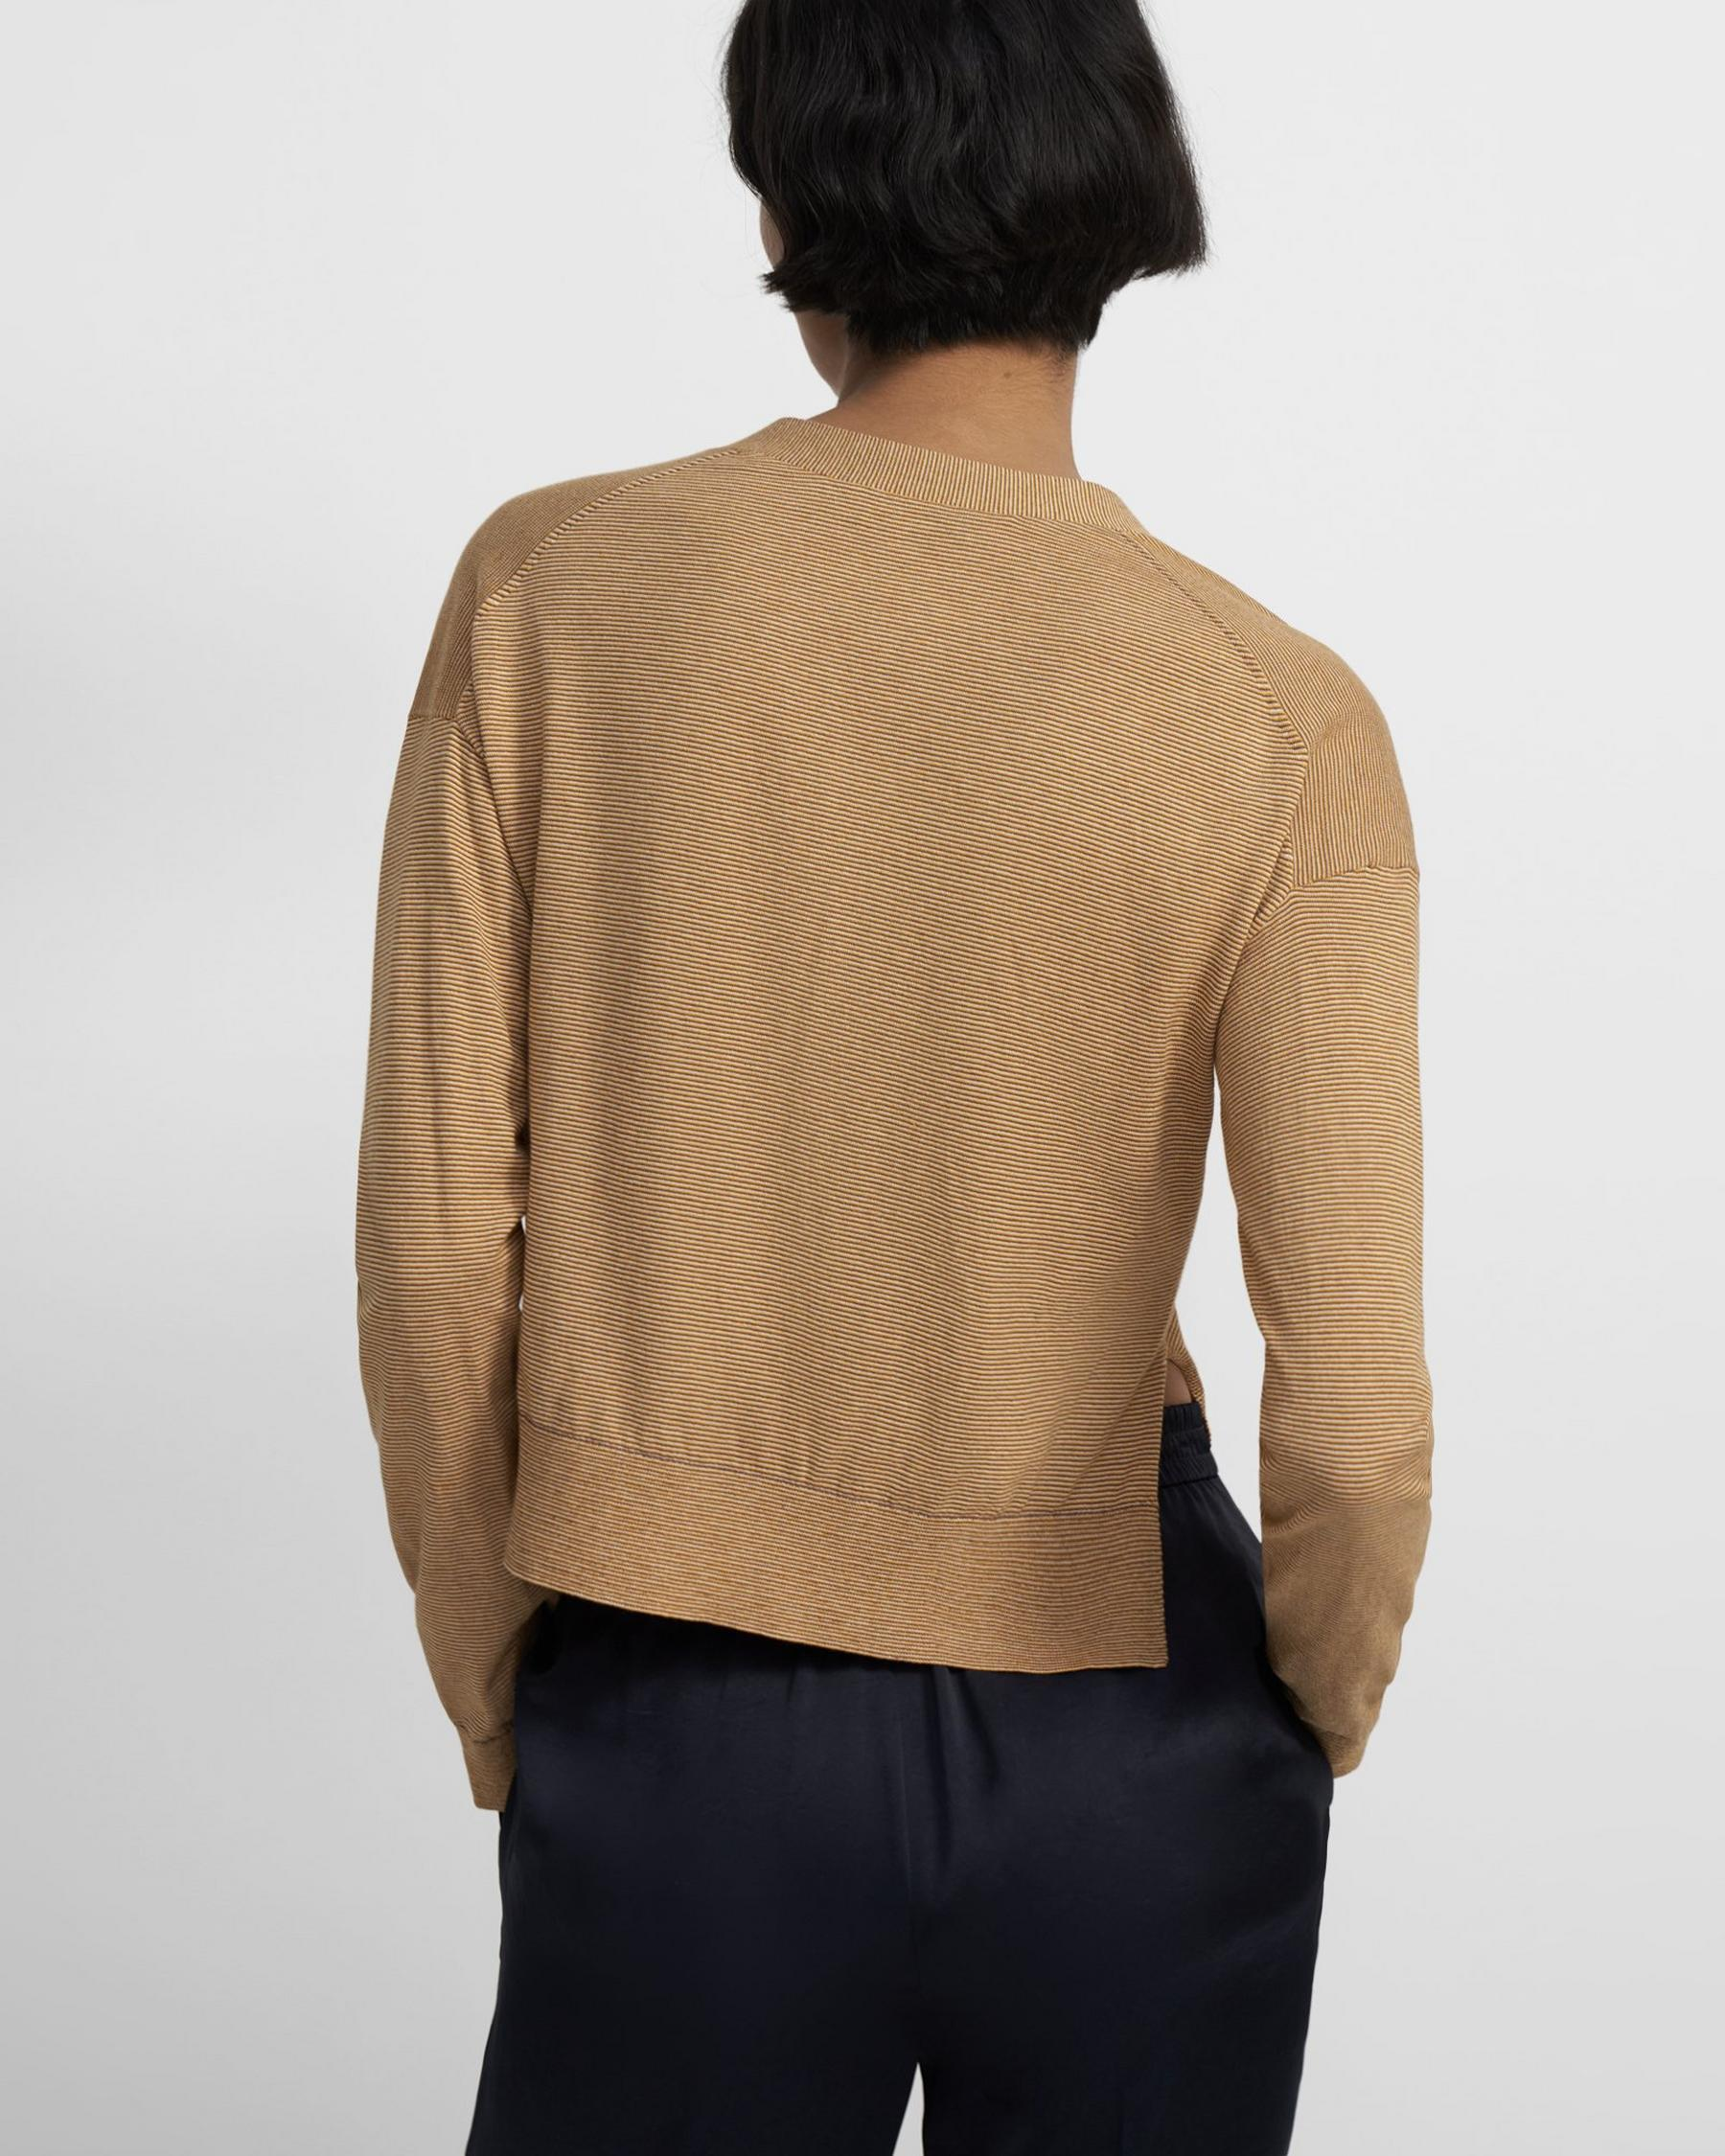 Cropped Cardigan in Cotton 2